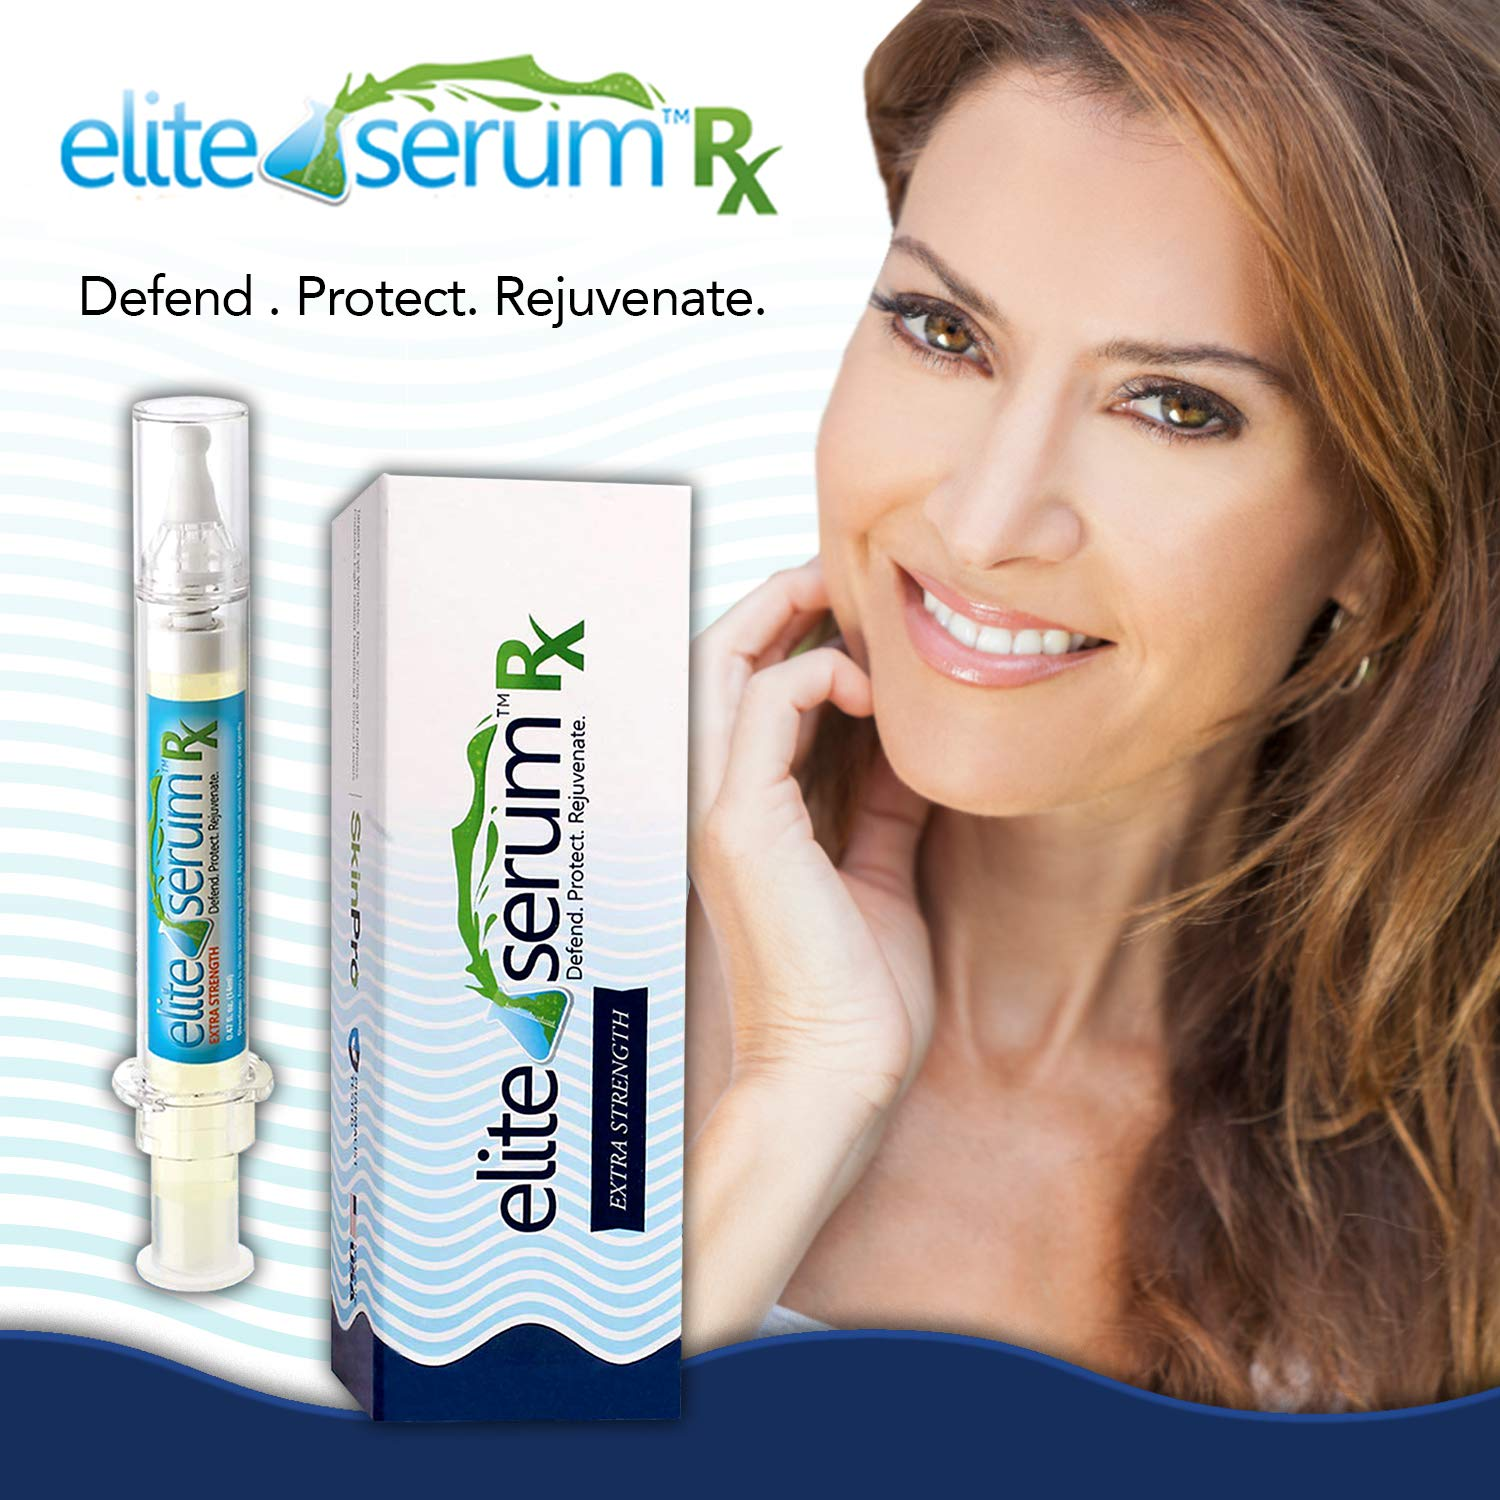 Elite Serum Rx | Pharmaceutical Grade Eye Serum with 7 Patented Peptides |  Doctor Recommended for